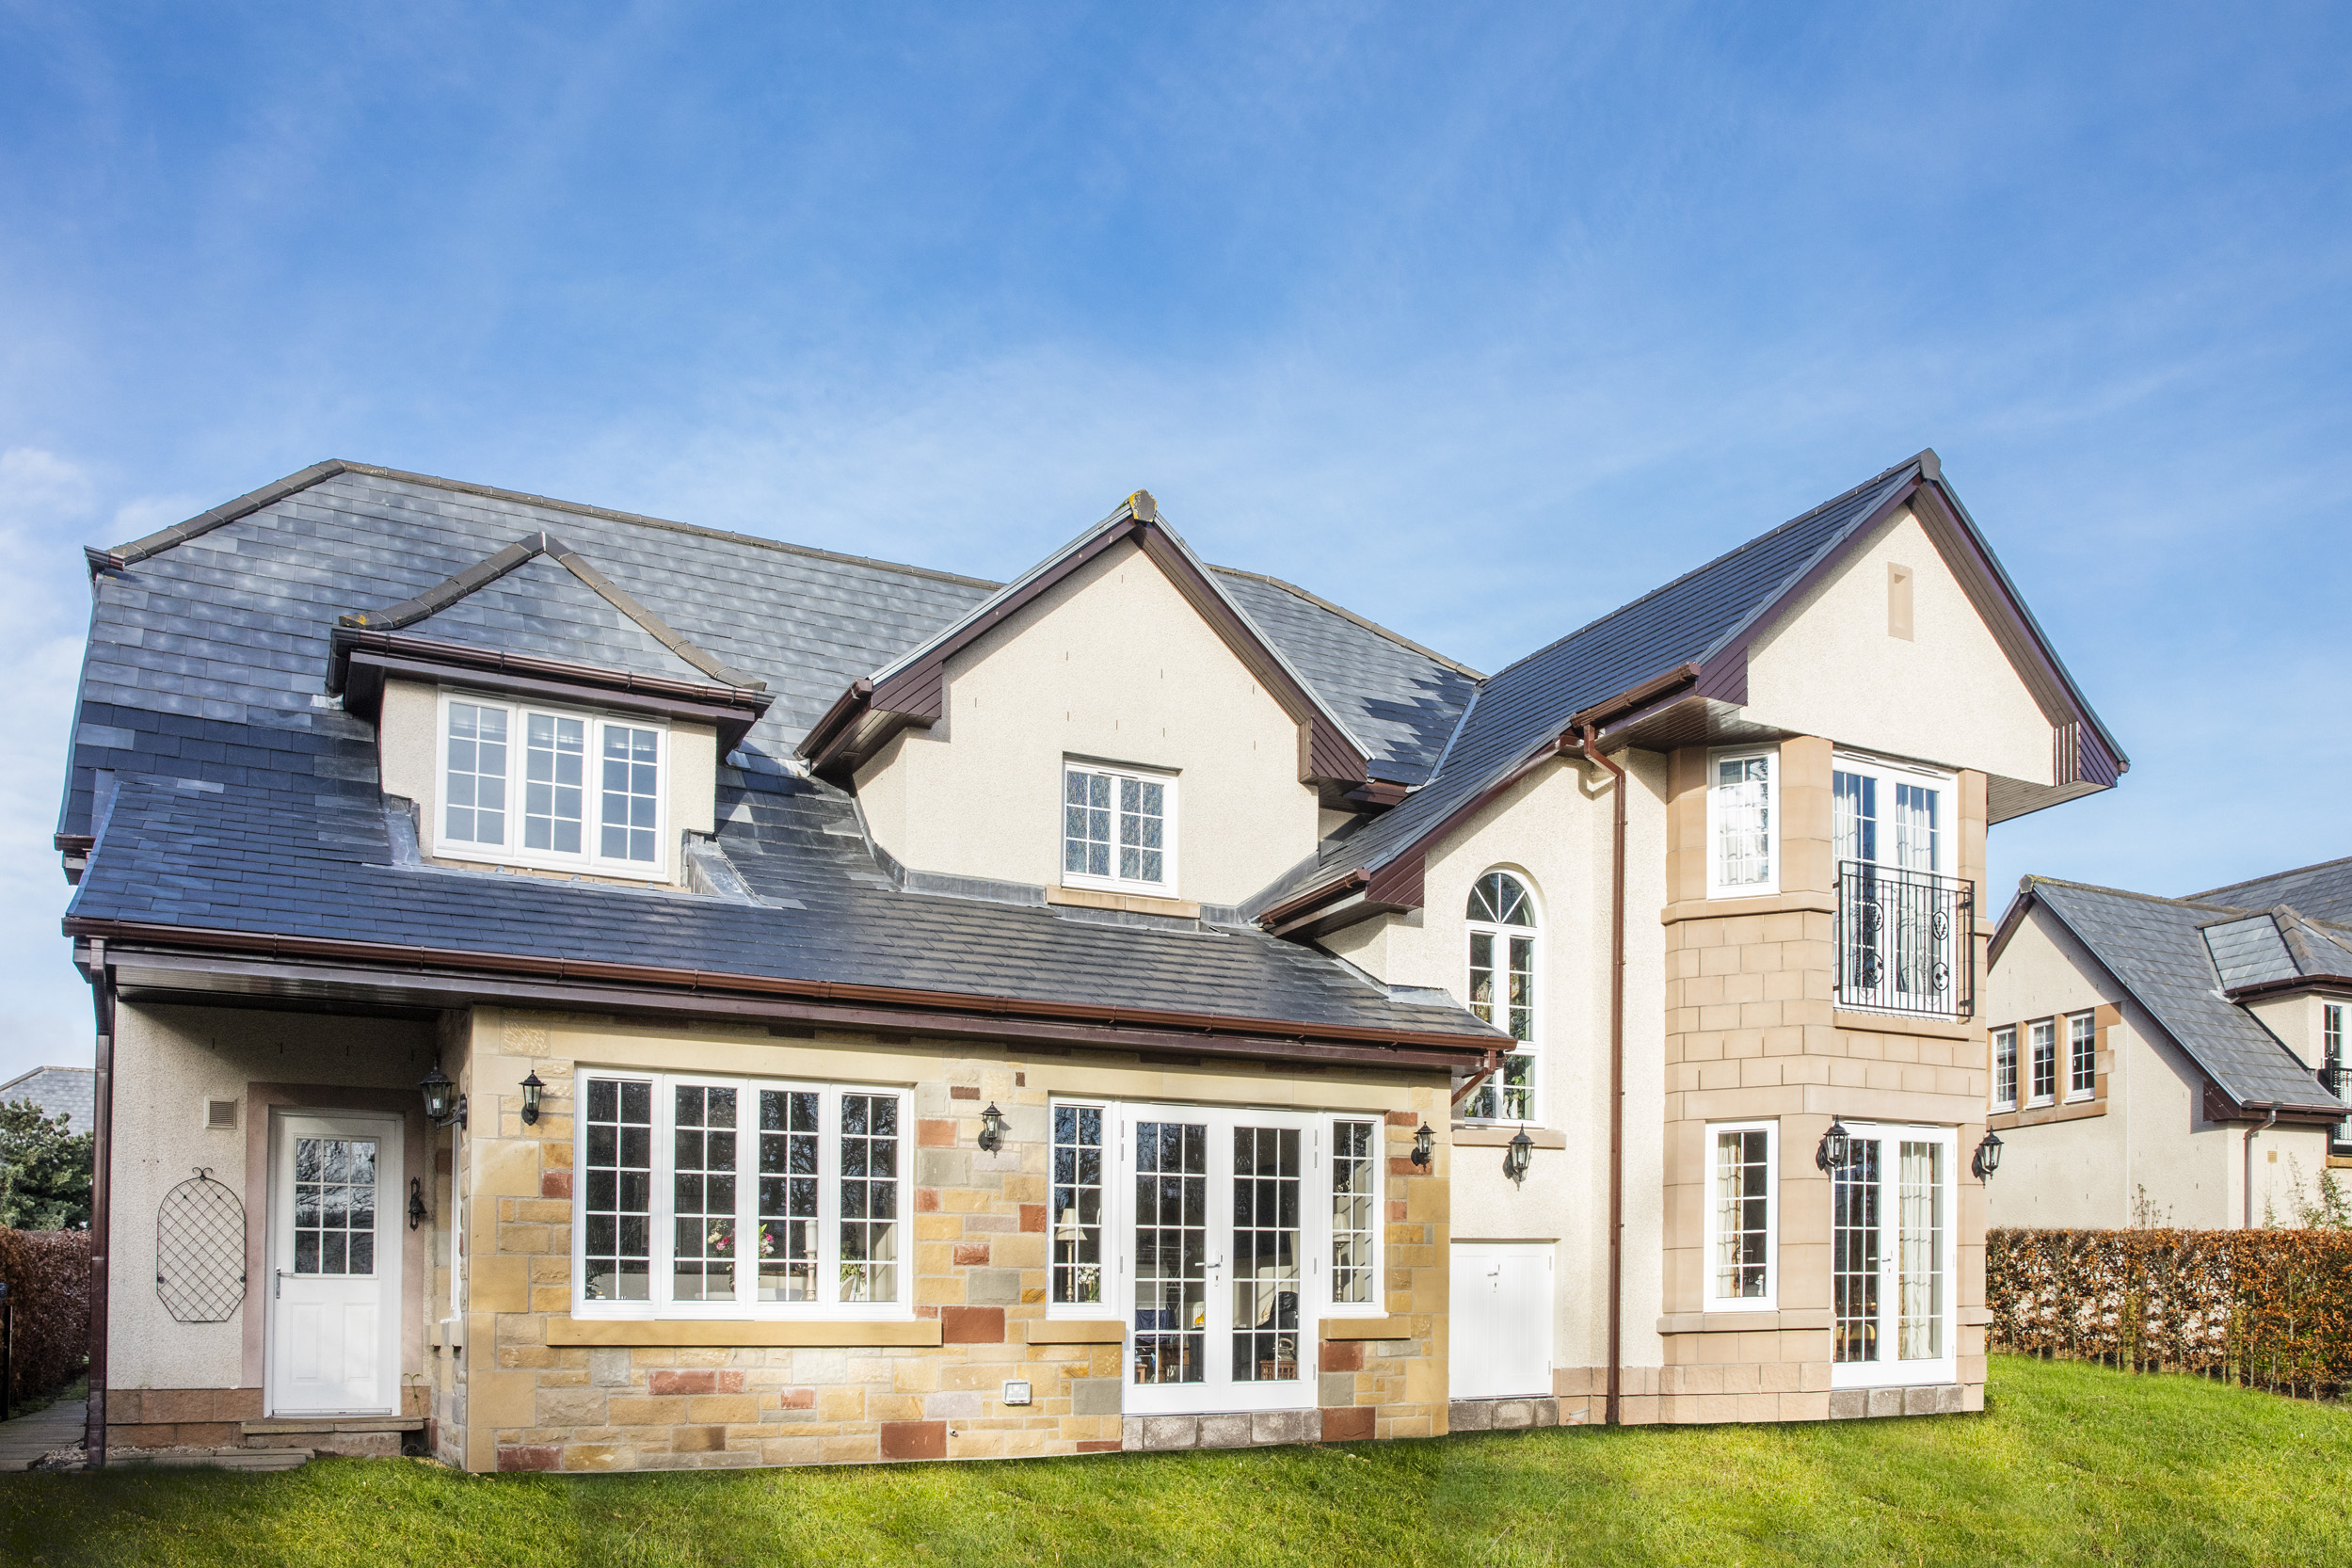 idh individually designed homes externals